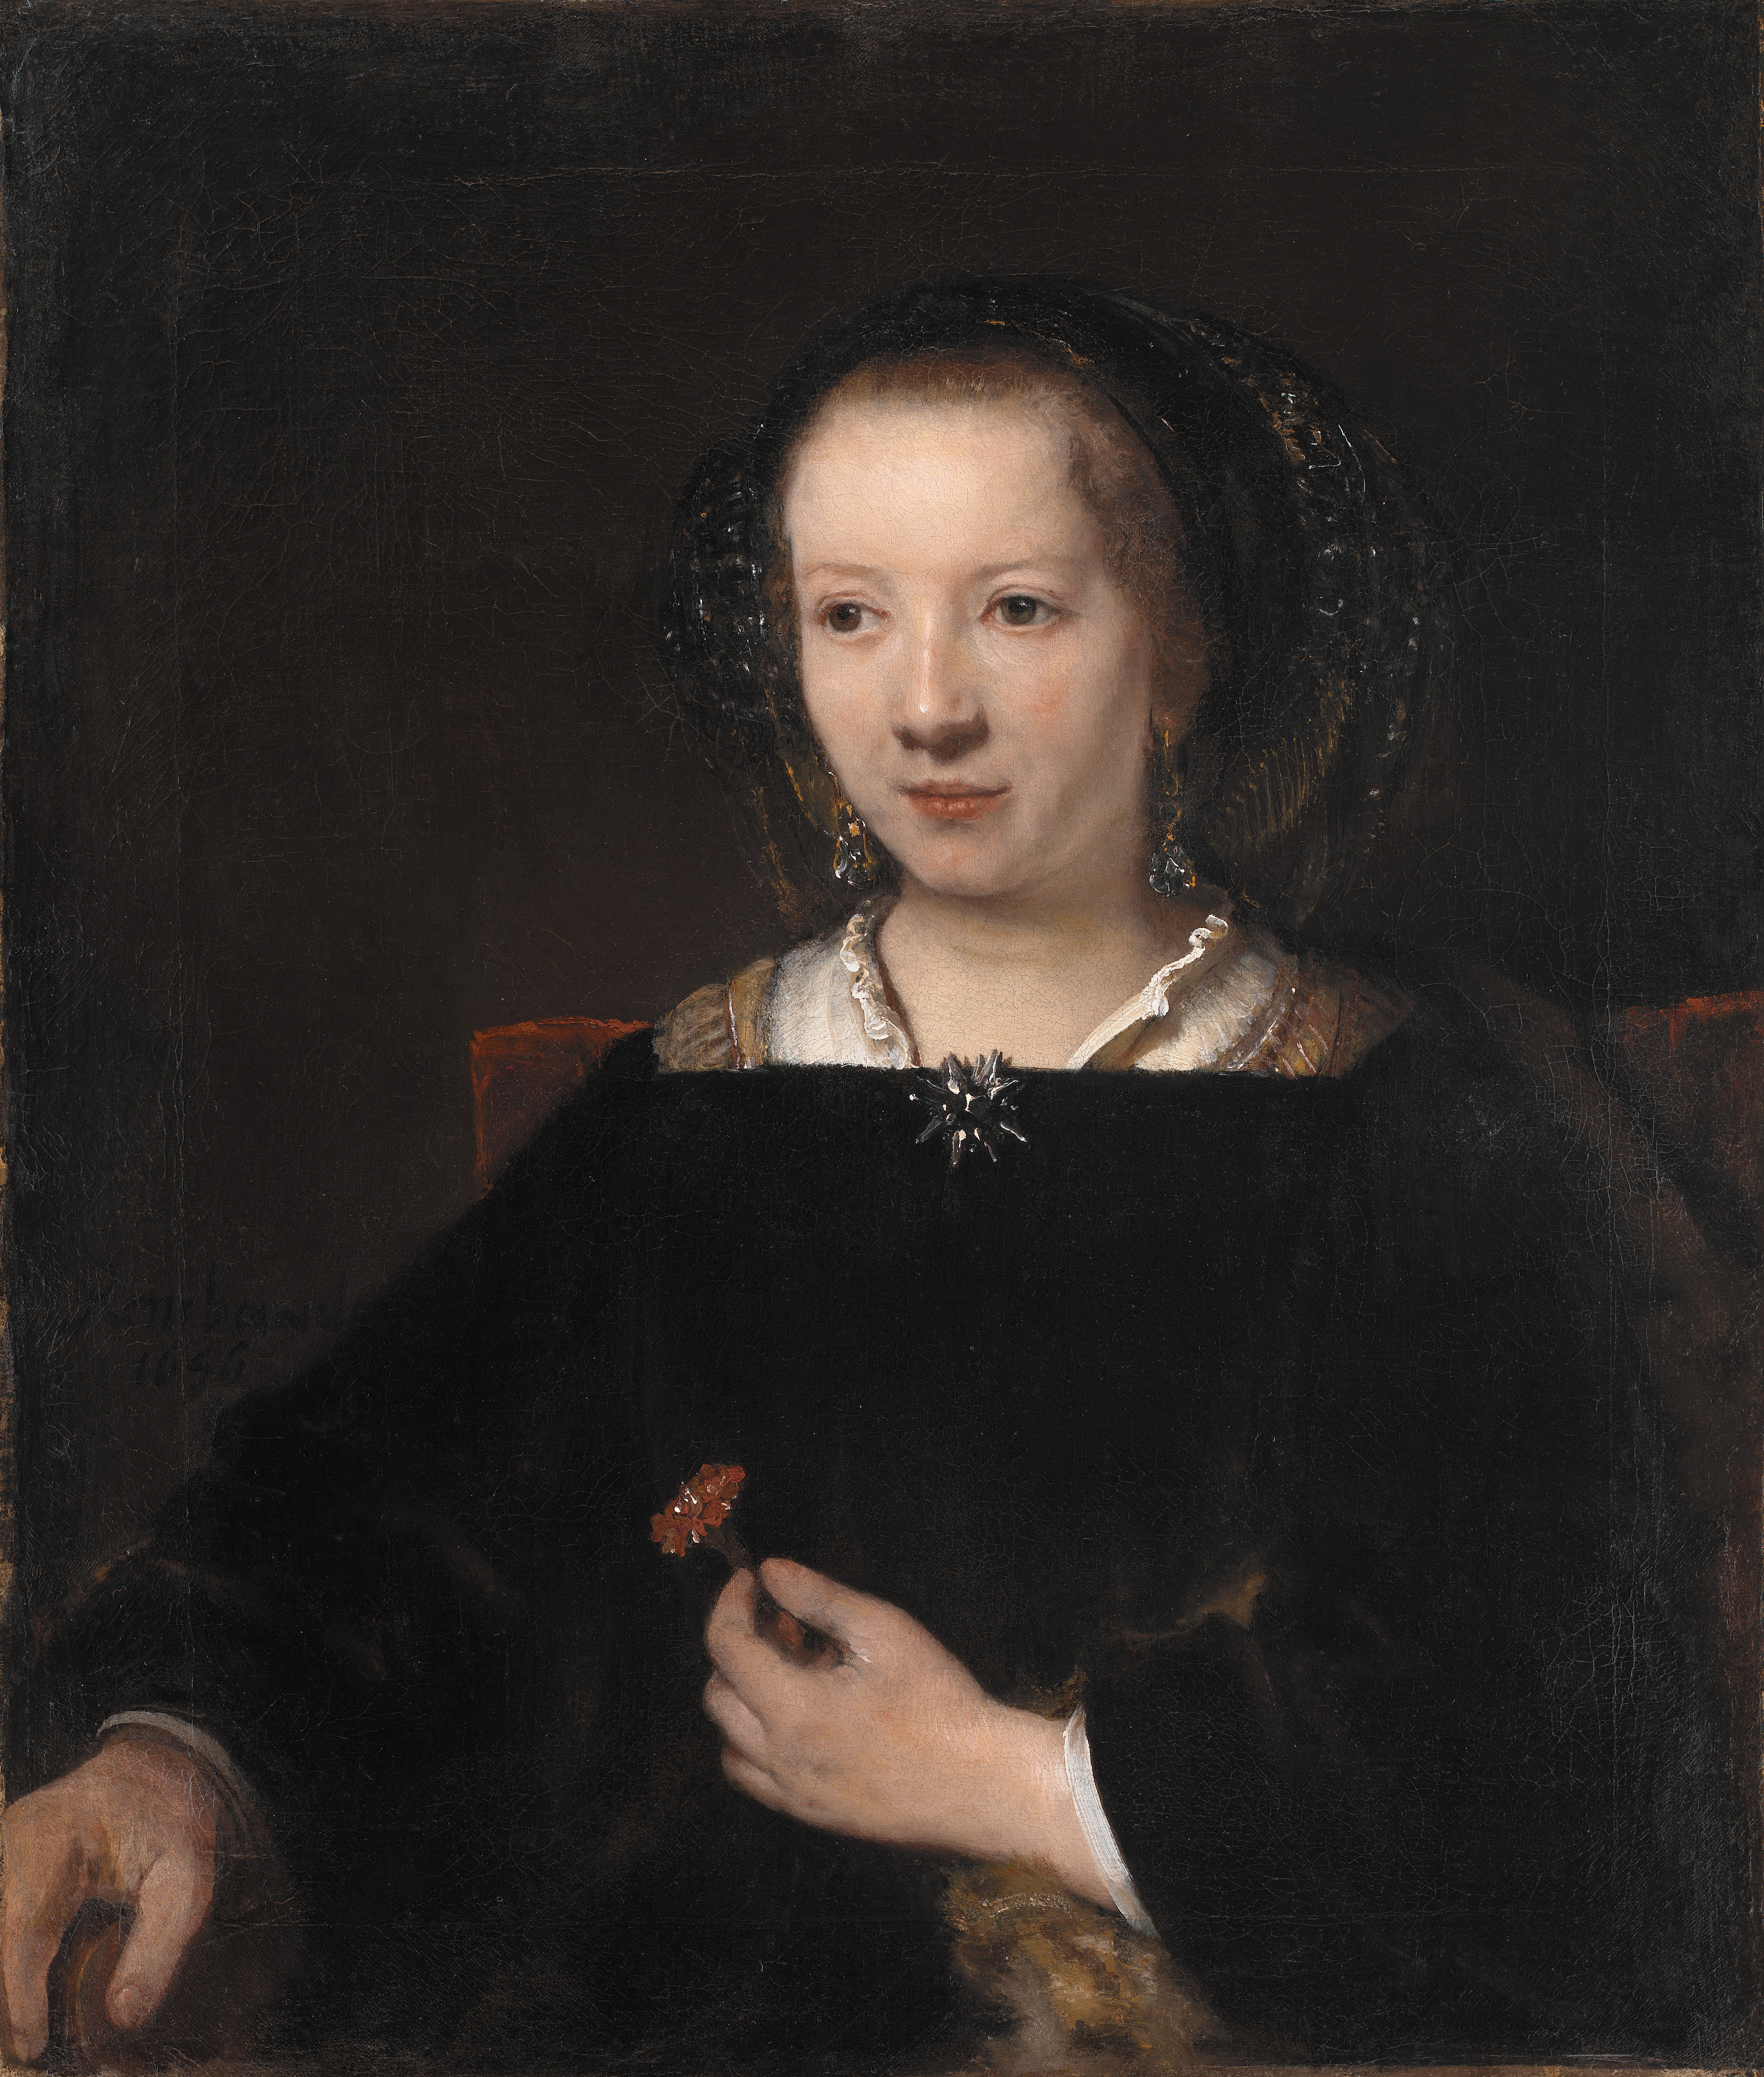 Willem Drost?, Rembrandts værksted (1633-58): Young Woman with a Carnation, 1656, KMS388, Carnation, Indoor, Monochrome, People, HQ Photo